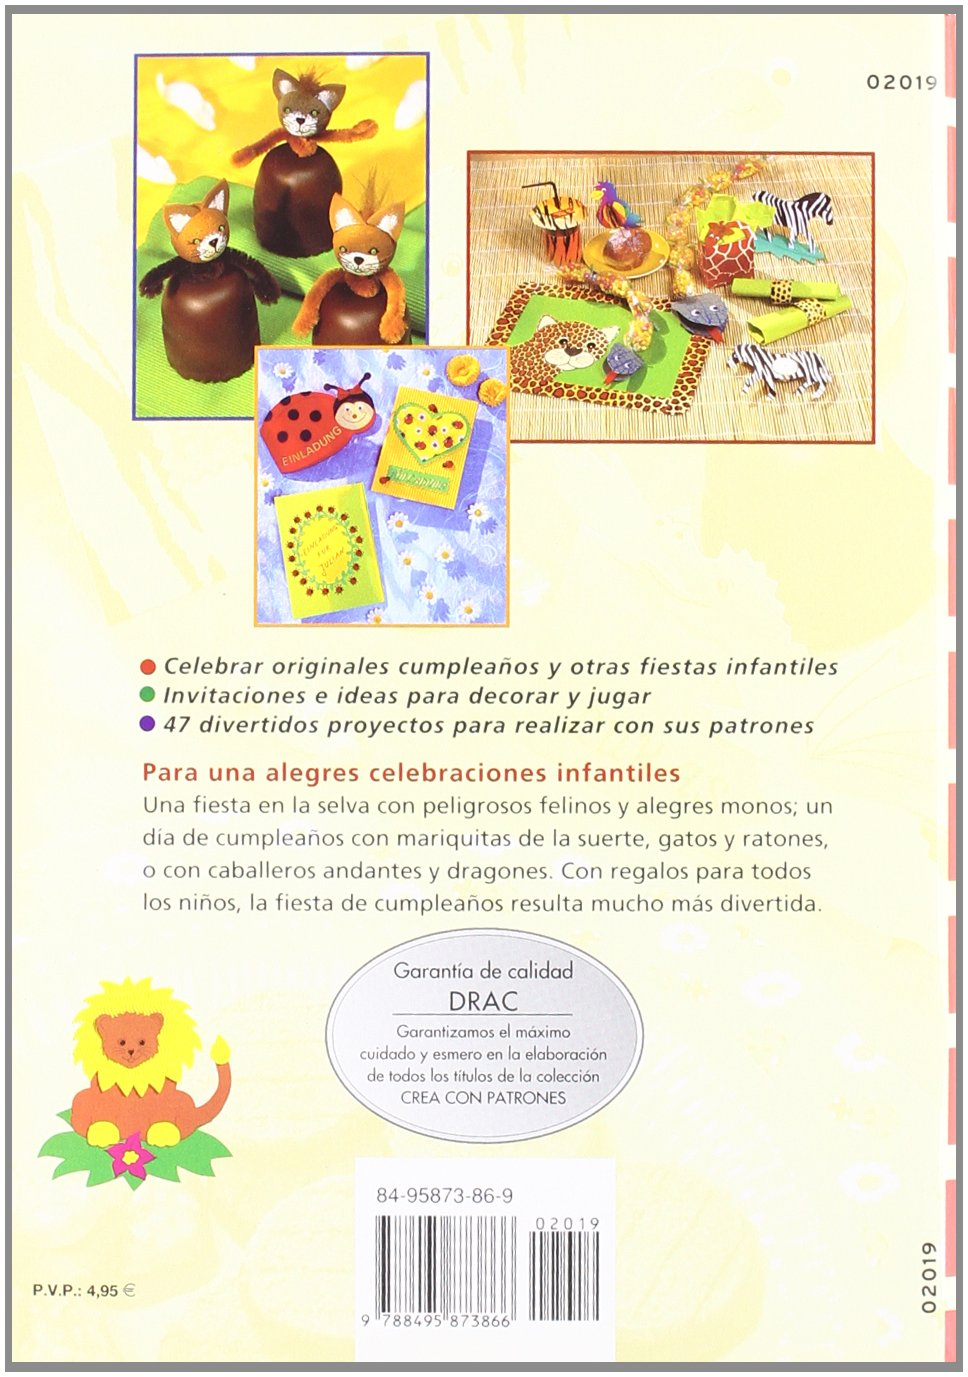 Decorar Con Papel Fiestas Infantiles (Spanish Edition): Erika Bock, Ingrid Moras: 9788495873866: Amazon.com: Books